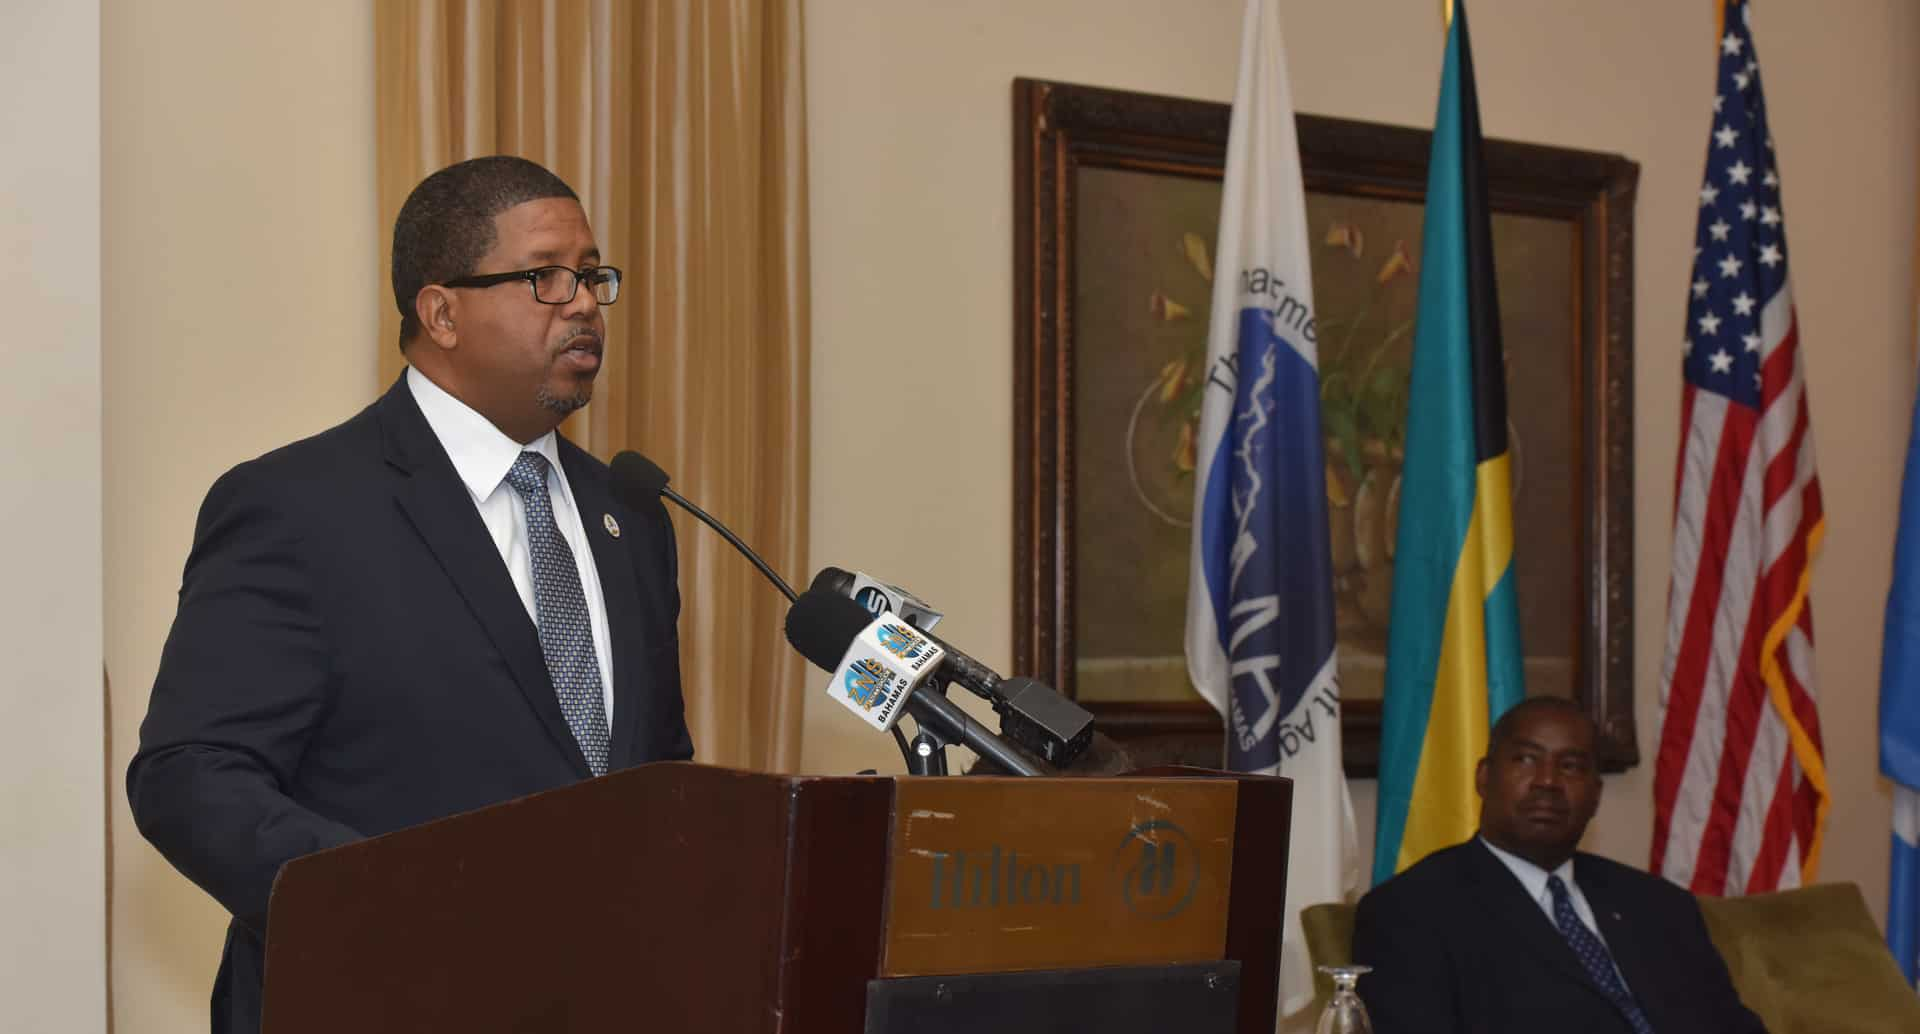 Deputy Prime Minister of The Bahamas praises research partnership on disaster risk reduction and climate change